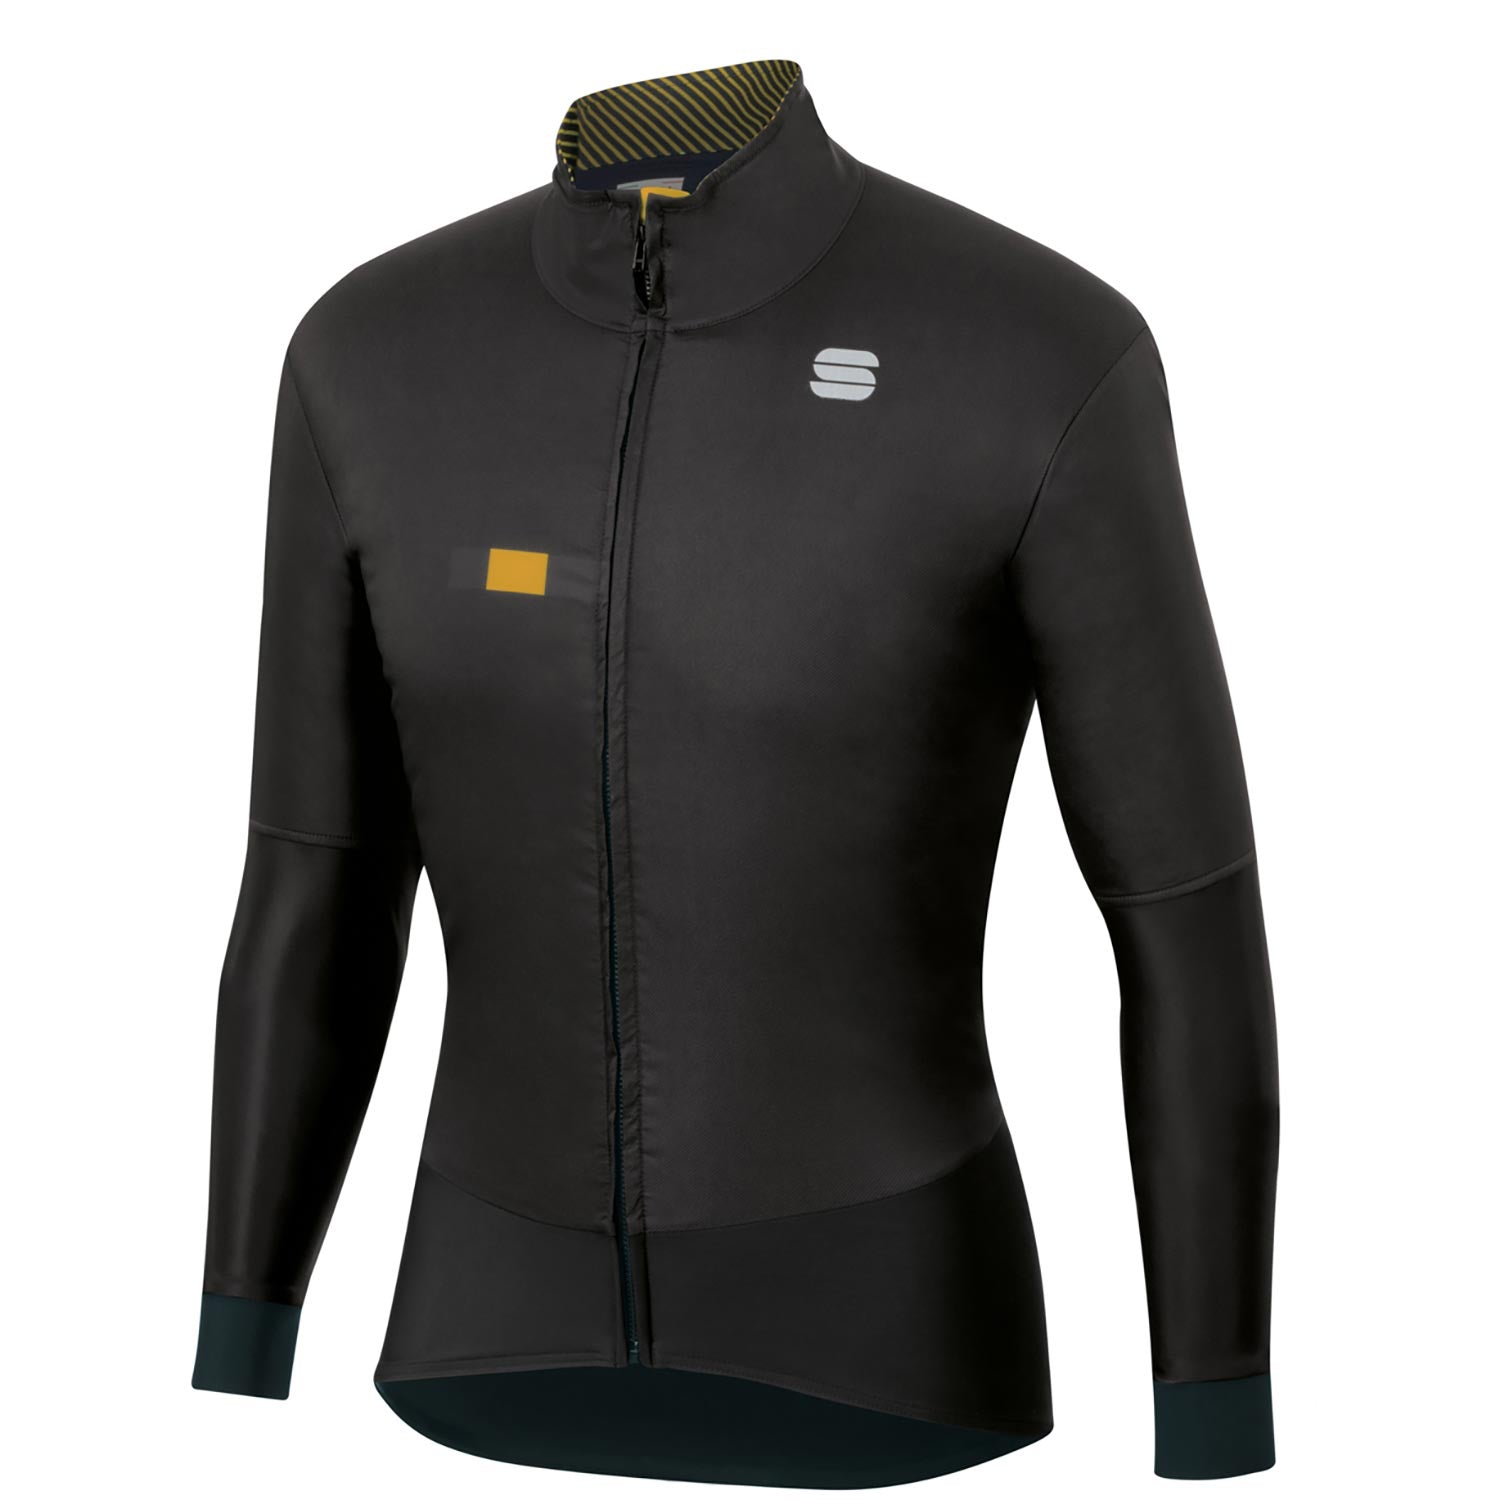 Sportful-Sportful BodyFit Pro Jacket-Black/Gold-S-SF205010022-saddleback-elite-performance-cycling